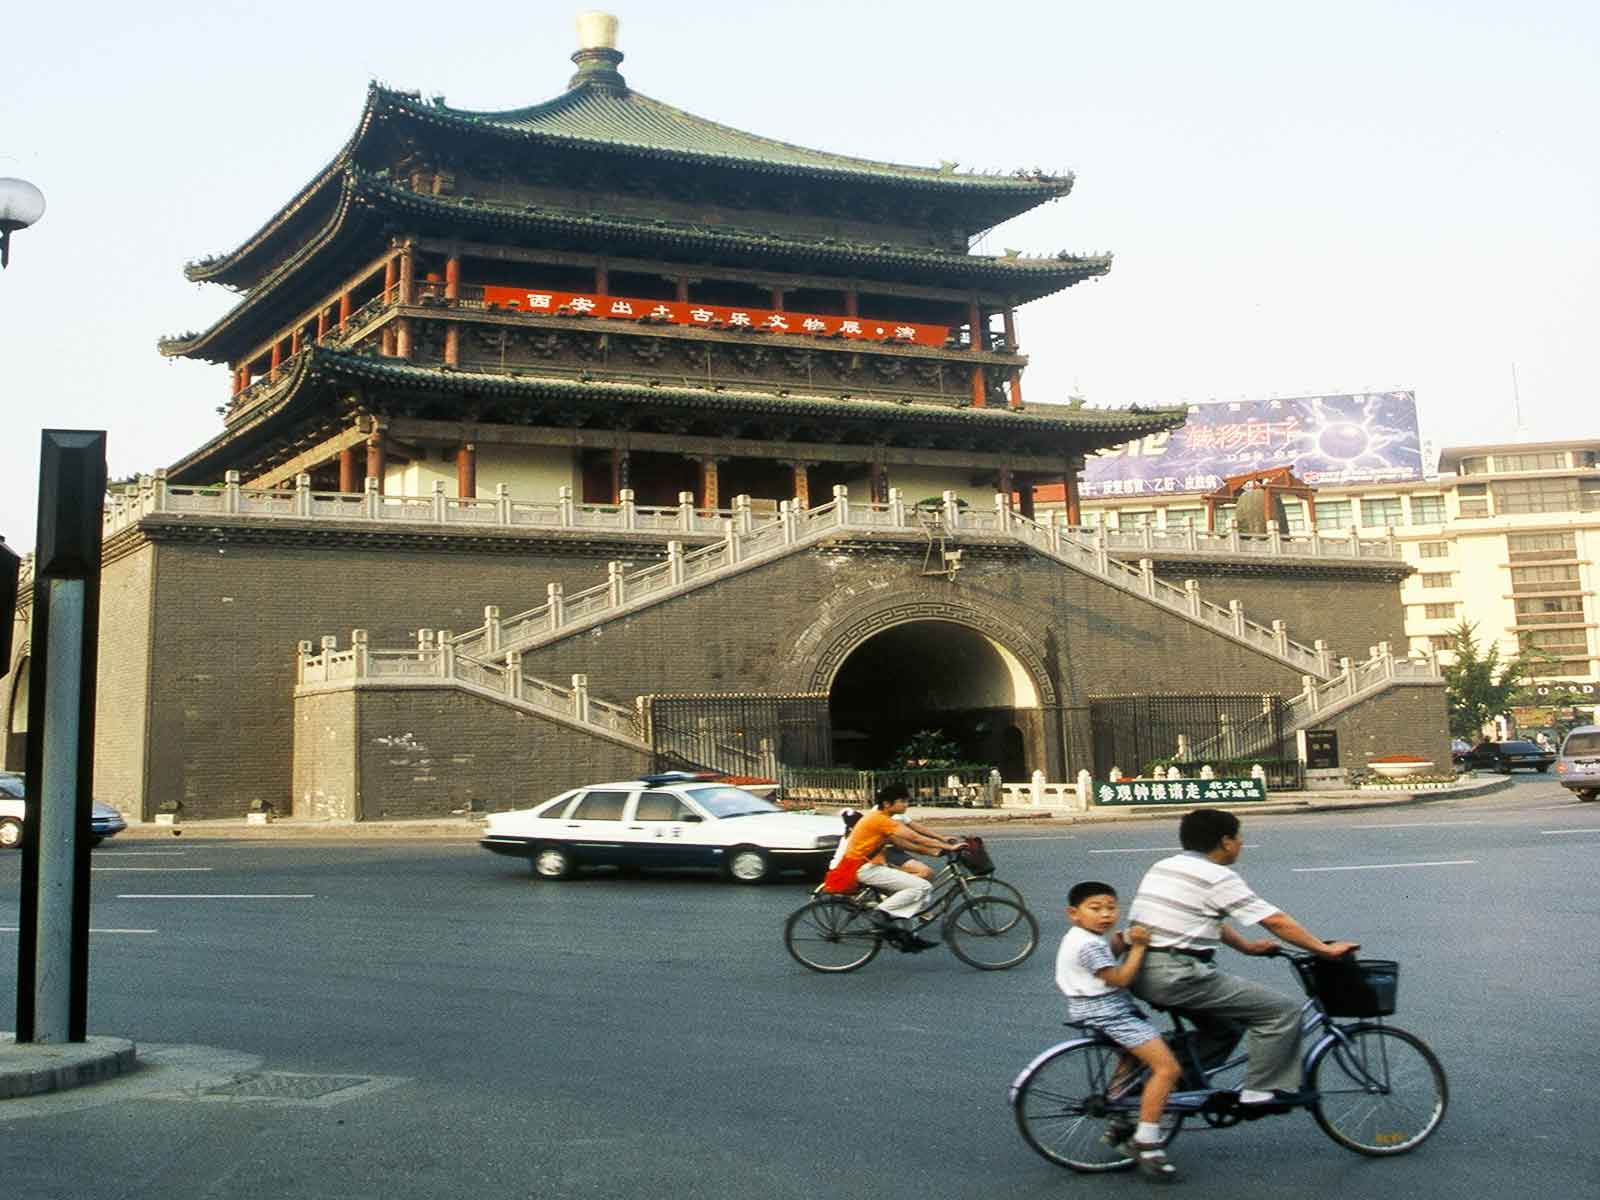 Bell Tower - Xian China - Silk Road Photo Journal - Dr Steven Andrew Martin - Research